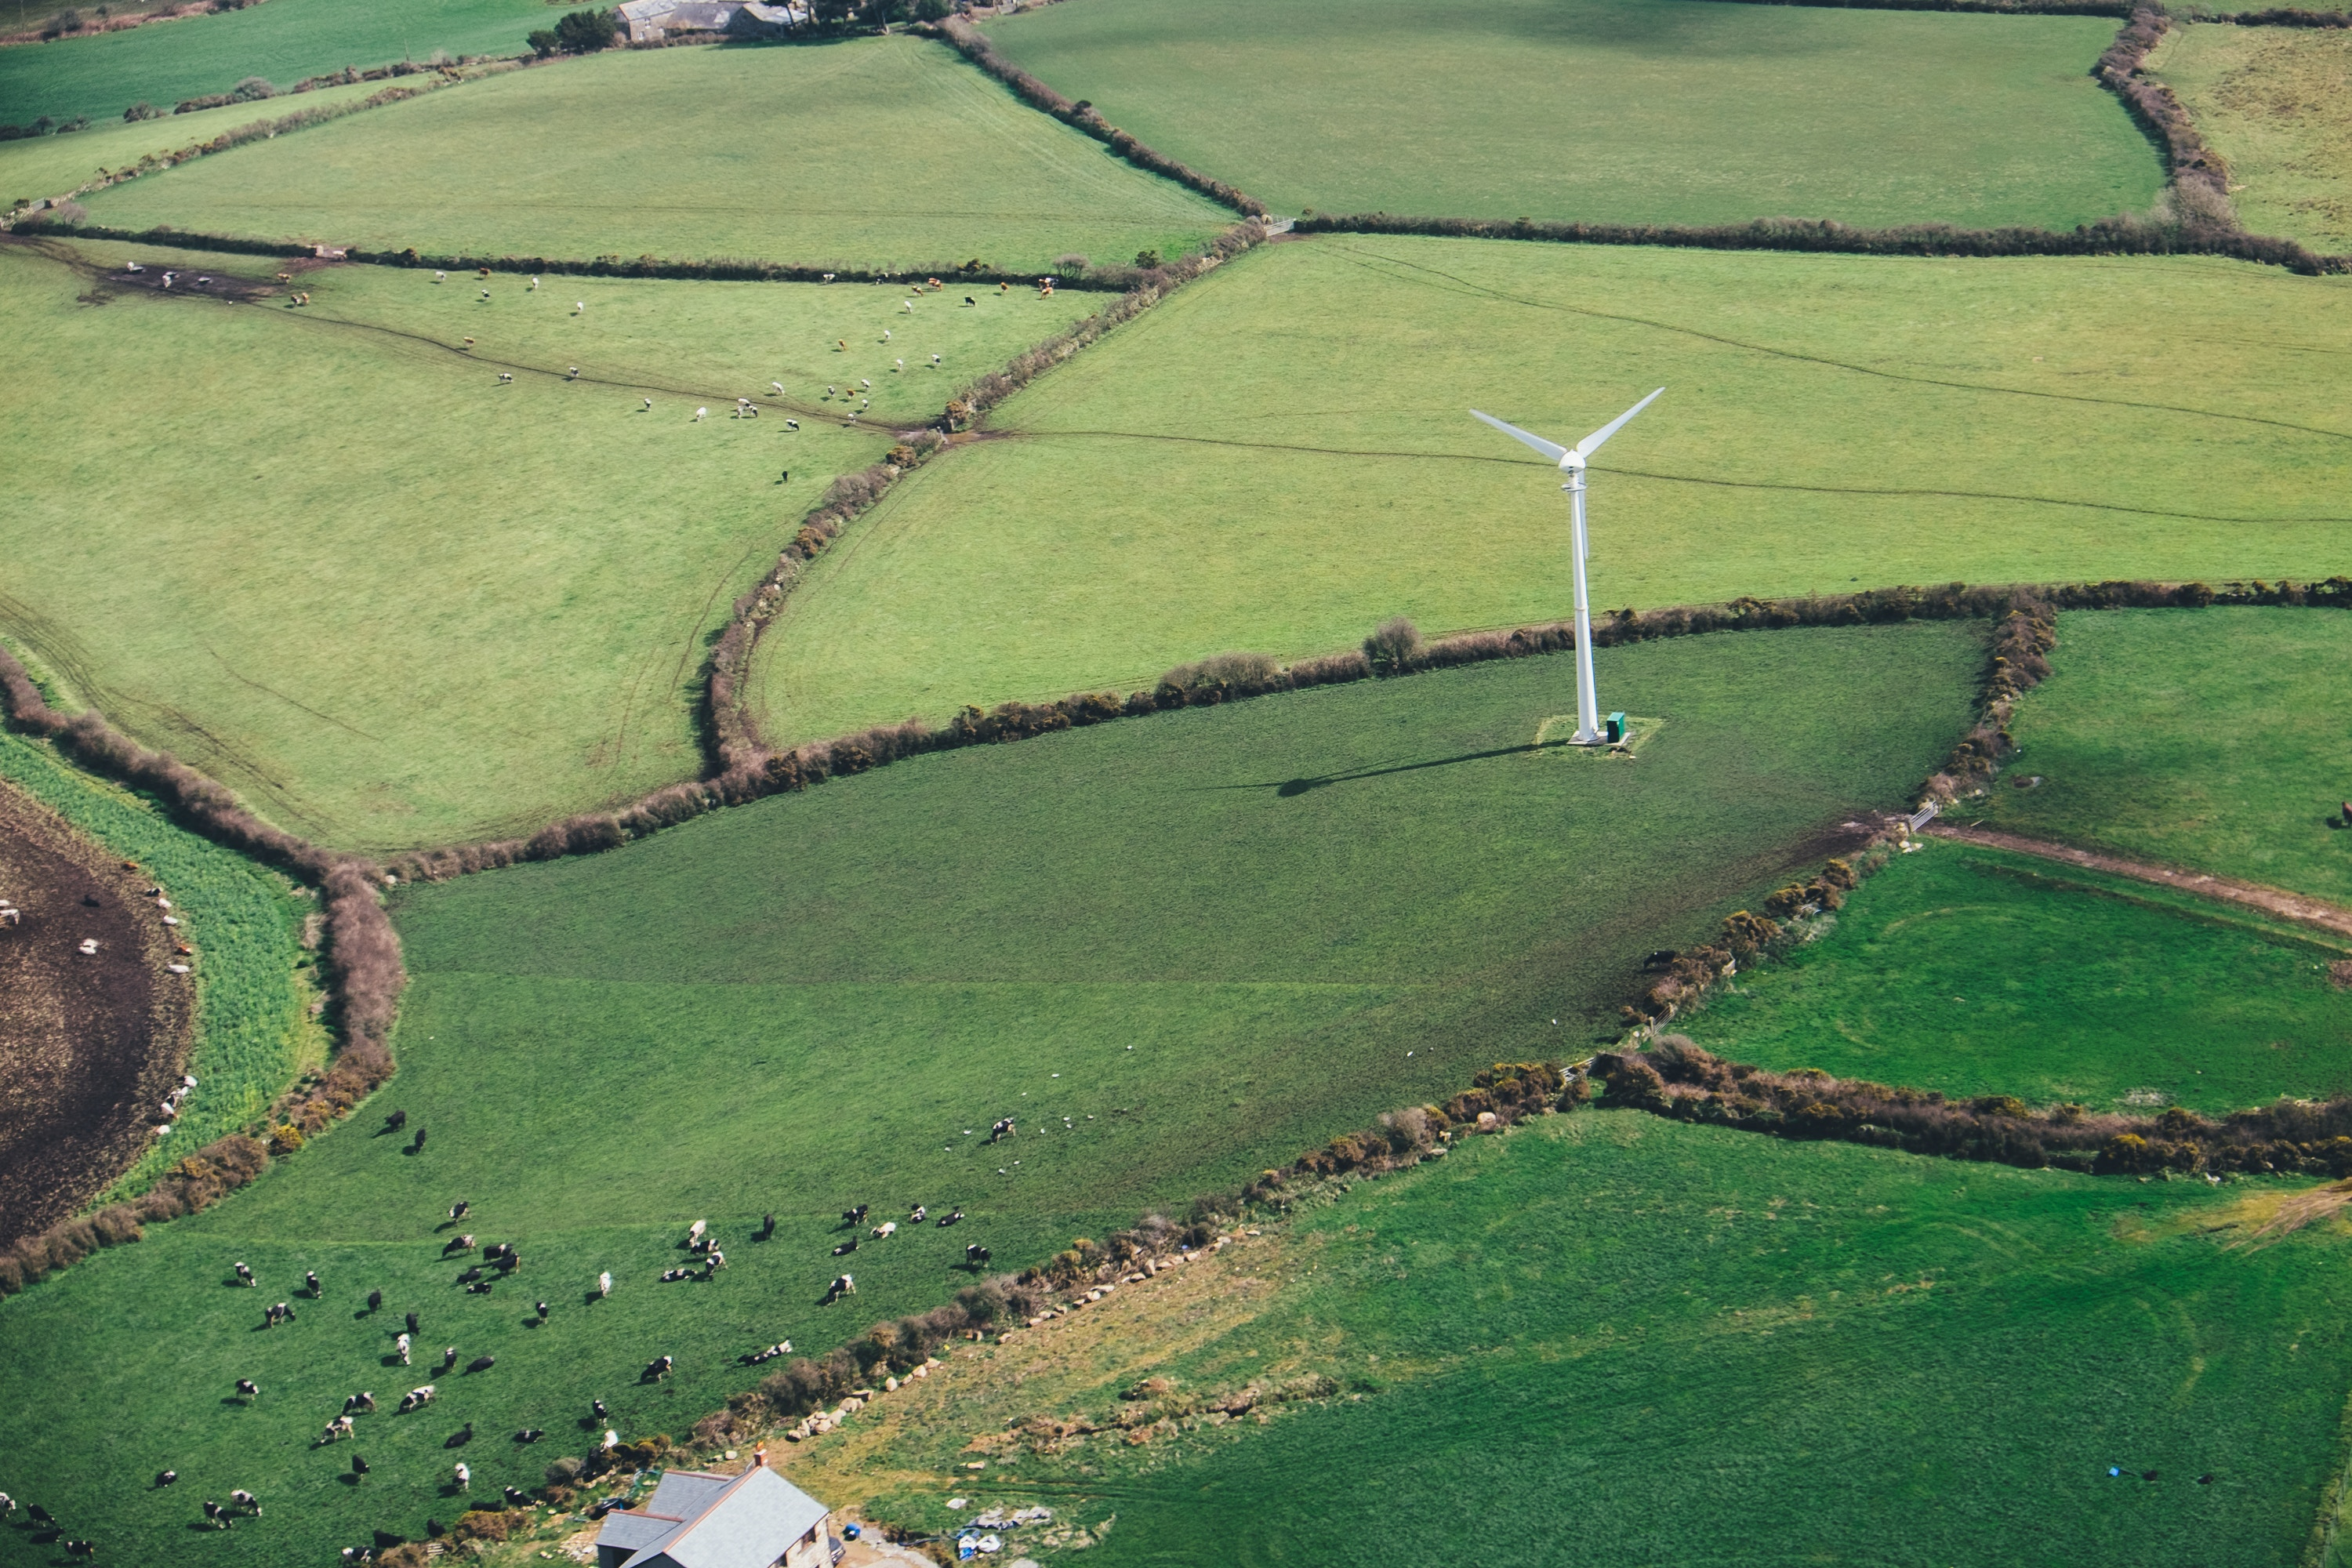 birds eye view of a wind mill in a grass field for green energy.